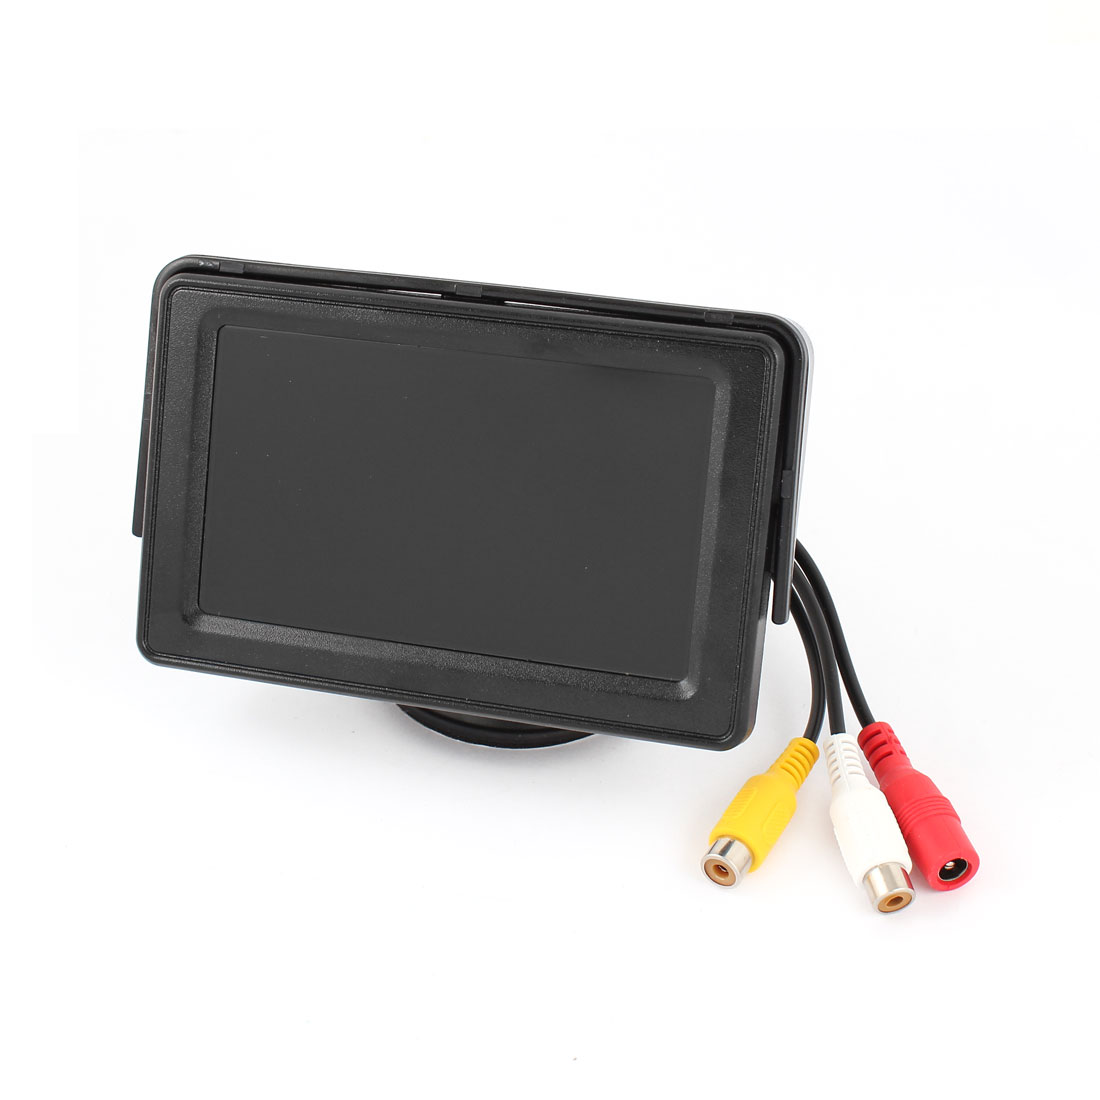 "4.3"" Widescreen 2 RCA Female 1 Male SocketDVD Video LCD Monitor for Car"